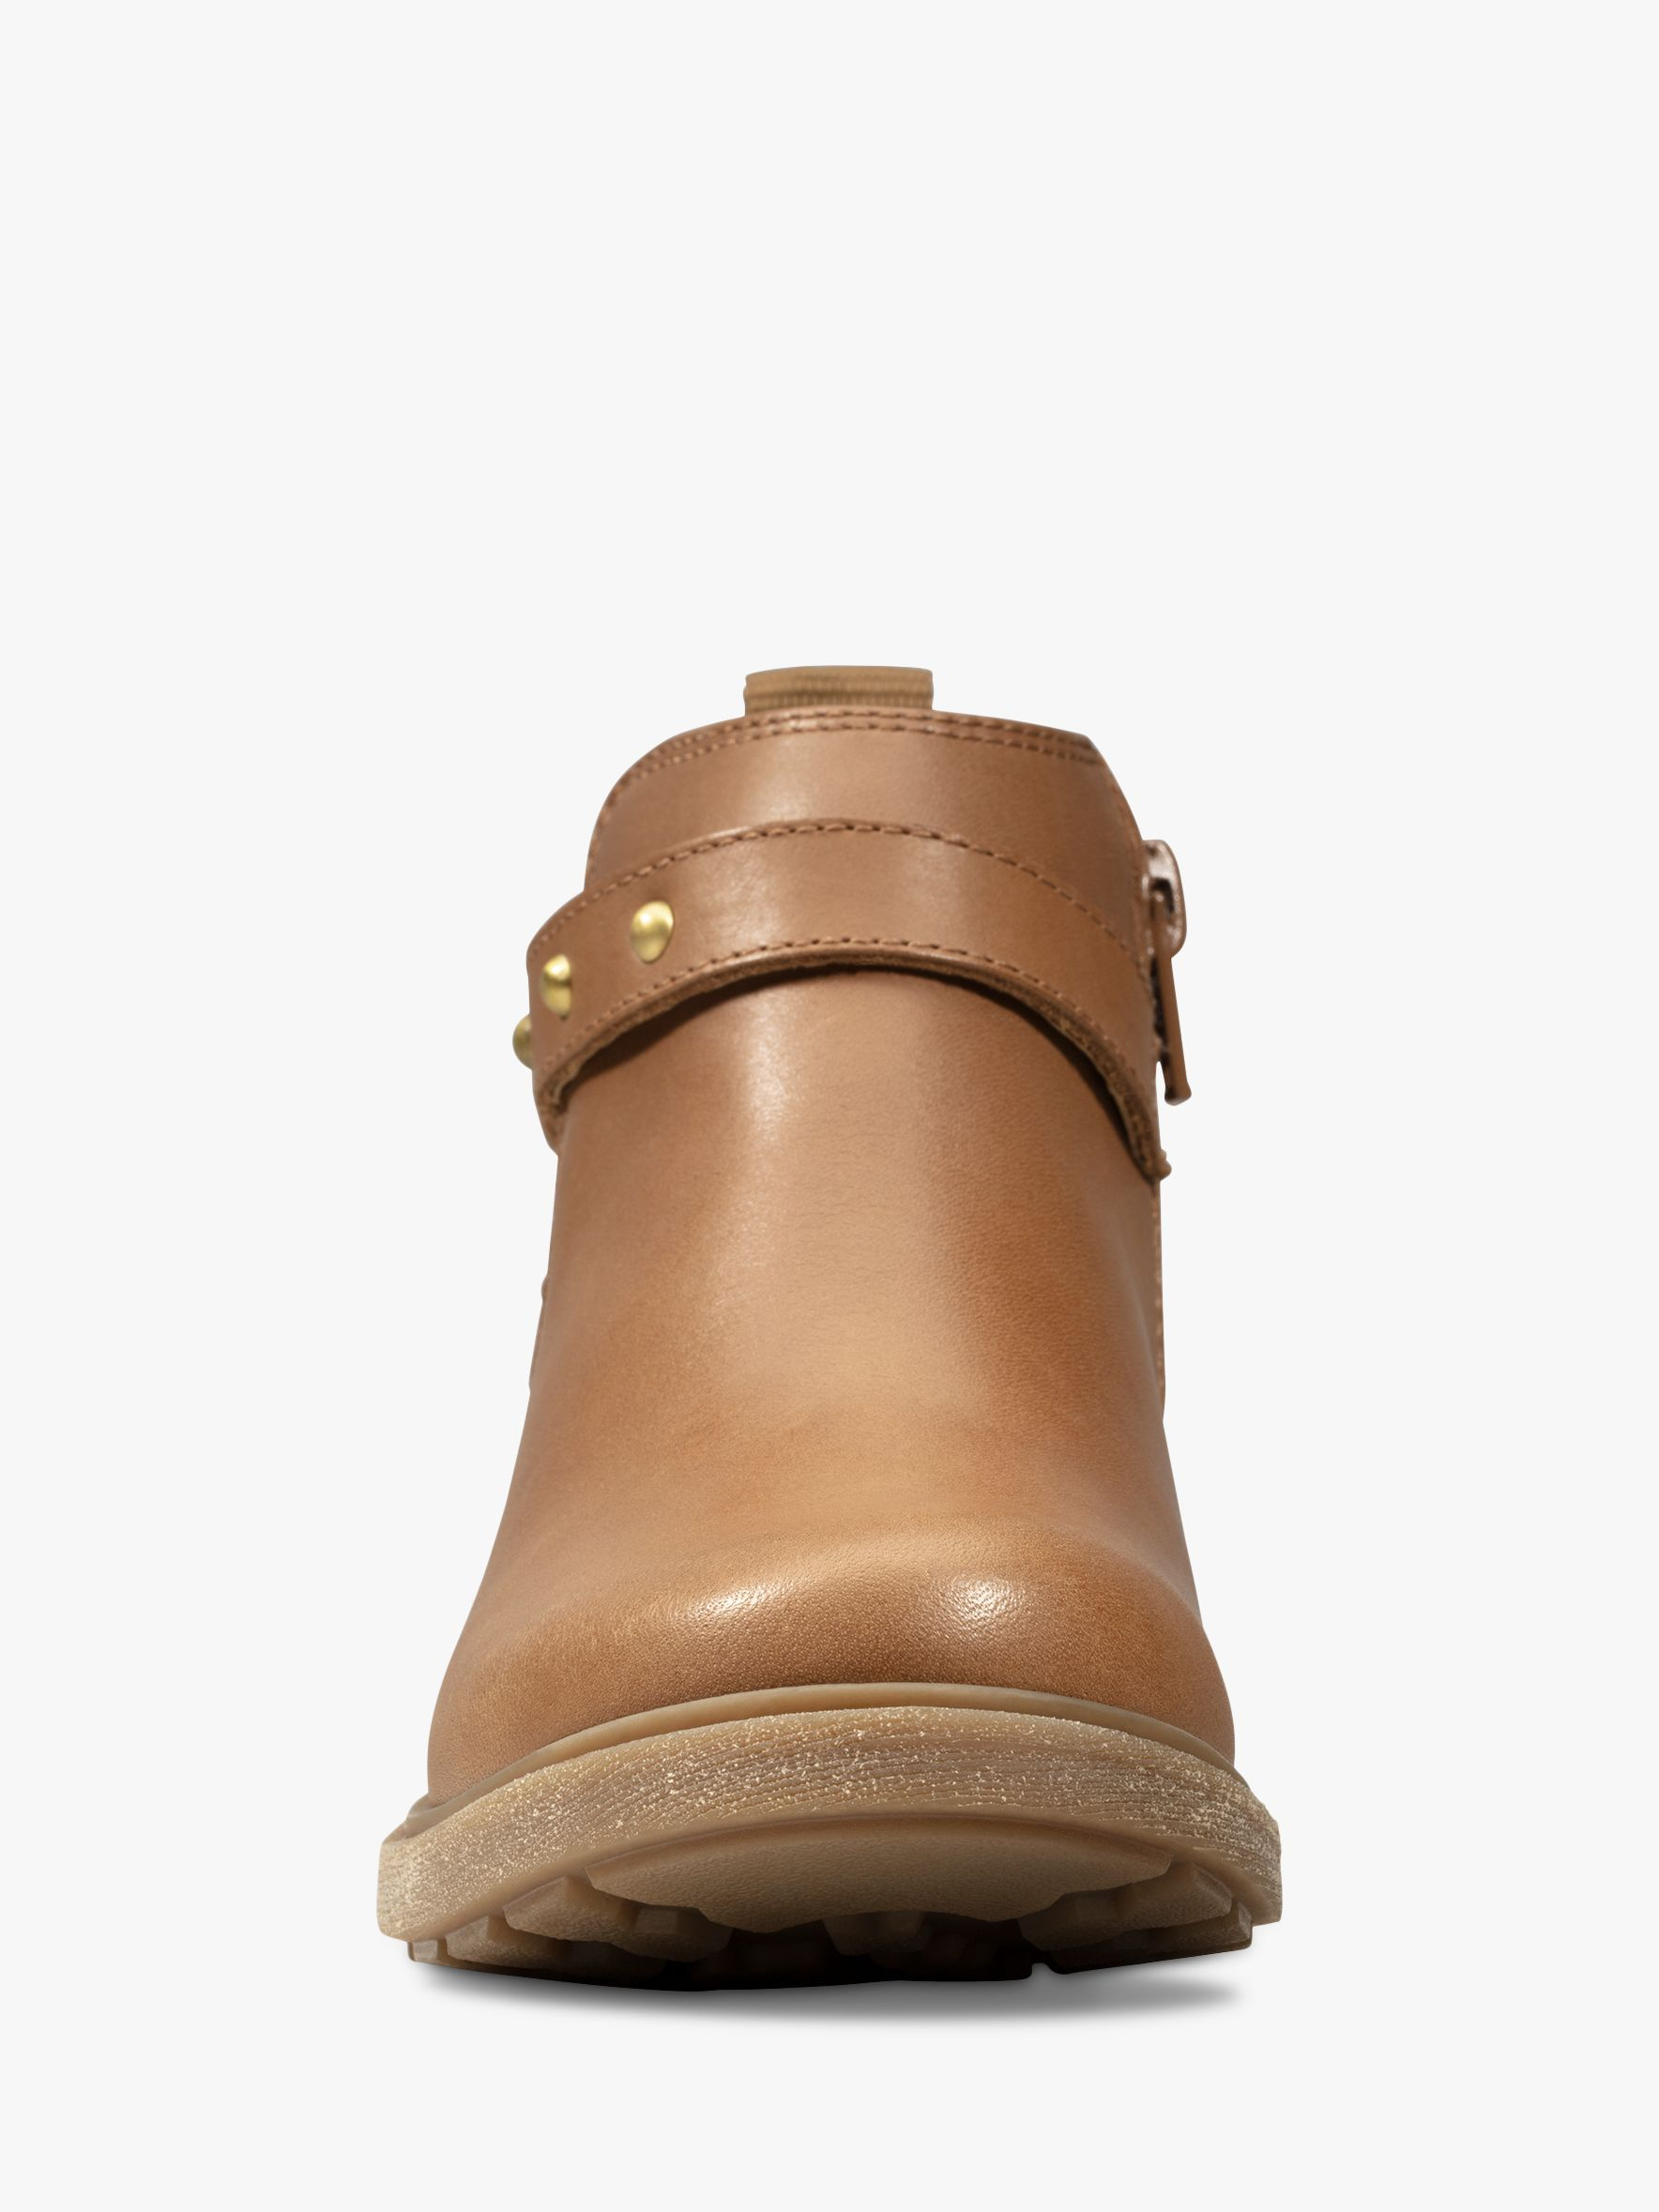 Clarks, Childrens shoes, Ankle boots